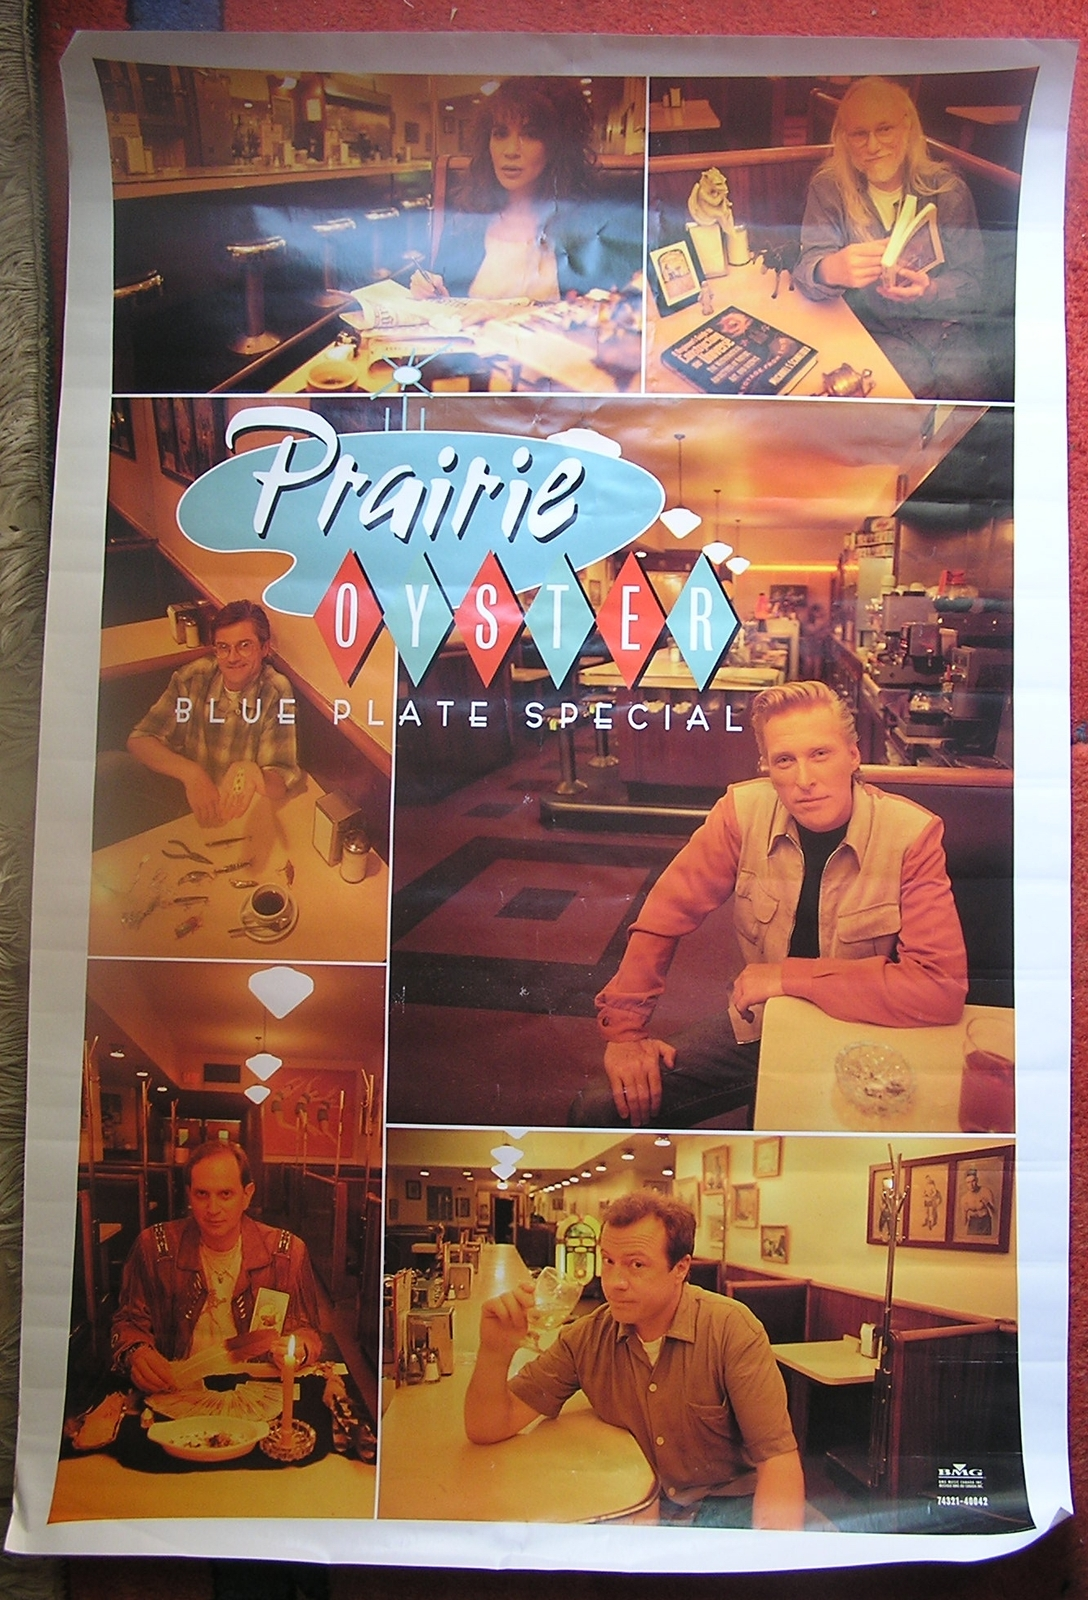 Prairie Oyster 1997 Rare Poster BMG Music and 21 similar items